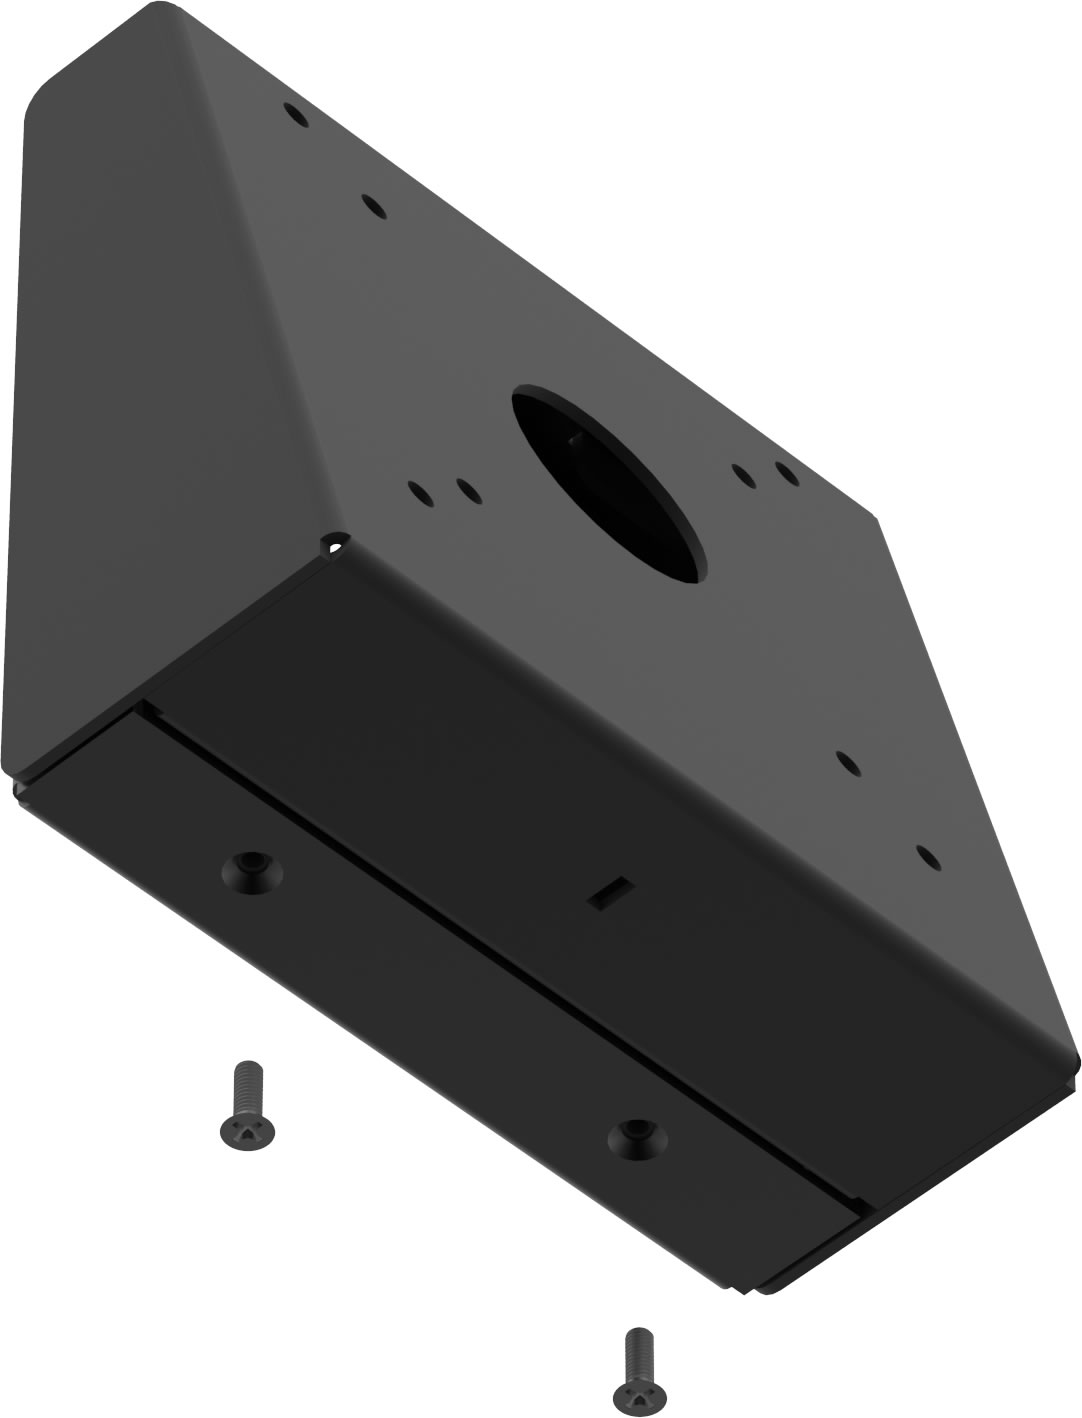 VESA 100-75 Compatible Fixed Tilted Wall Mount